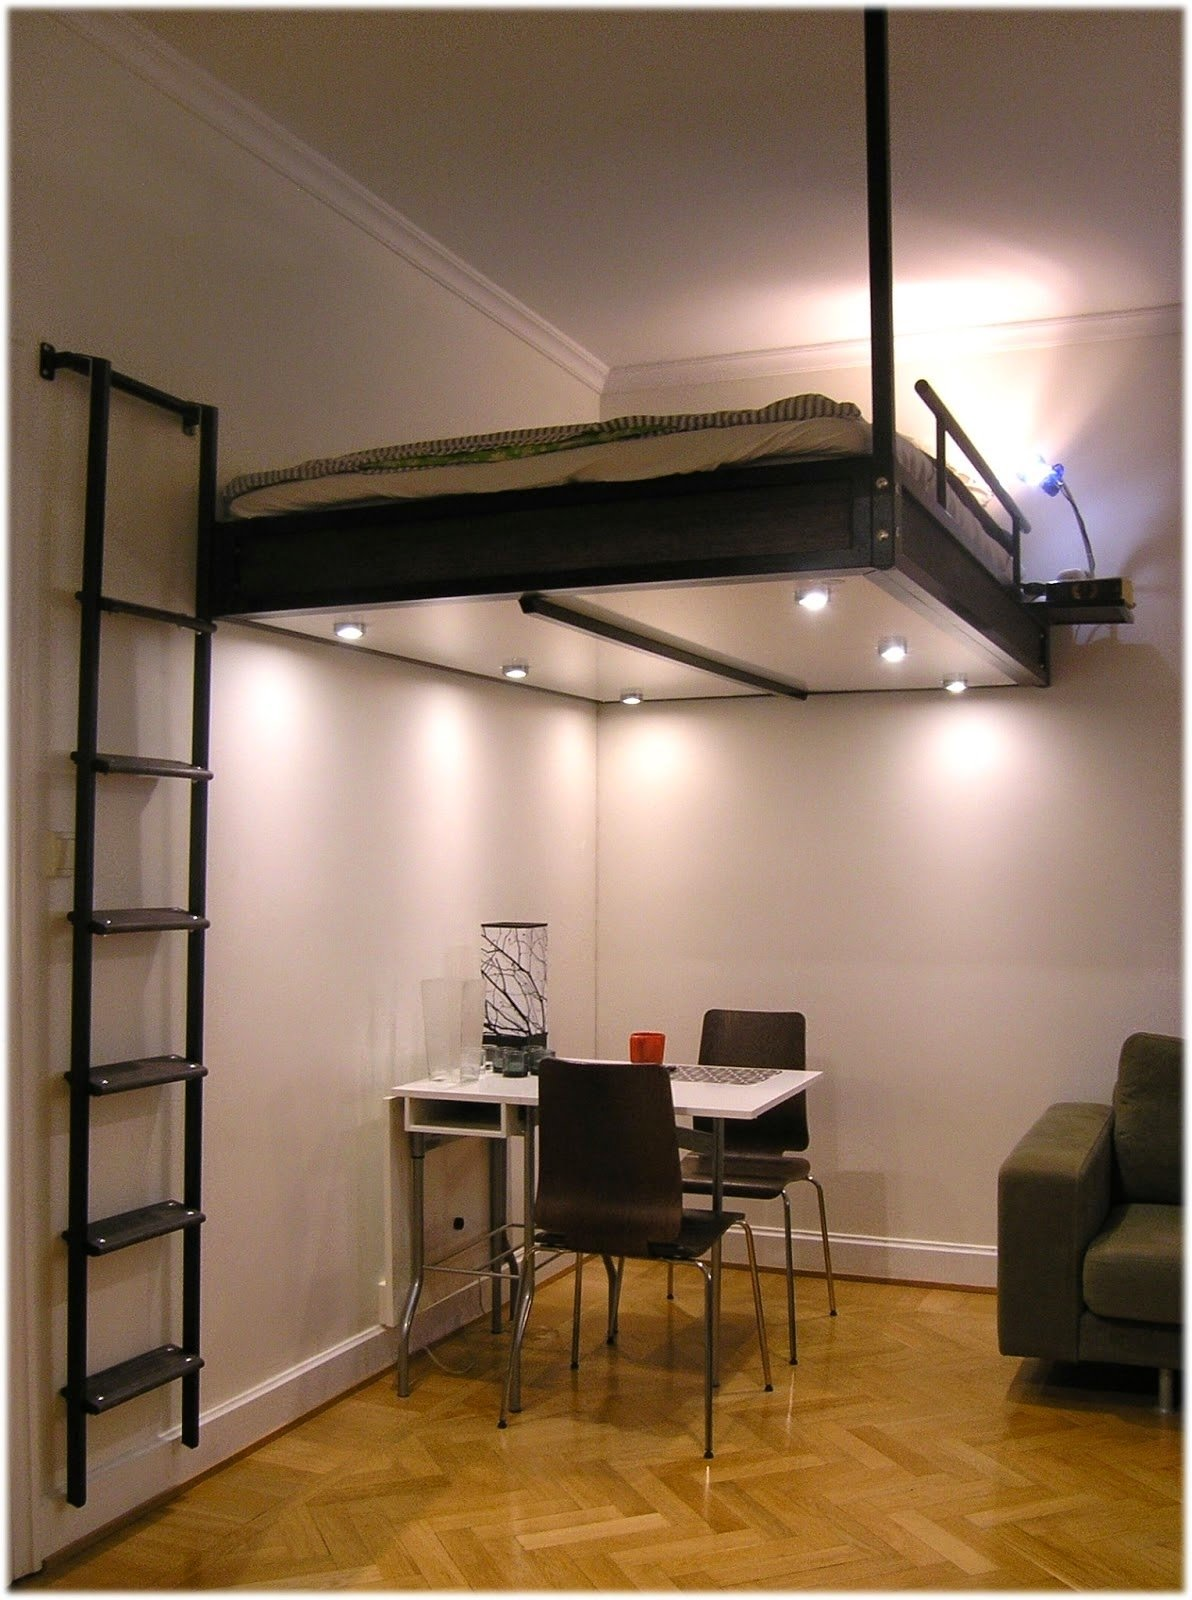 10 Perfect Space Saving Ideas For Small Homes space saving stairs designs for small homes stairs designs 2020